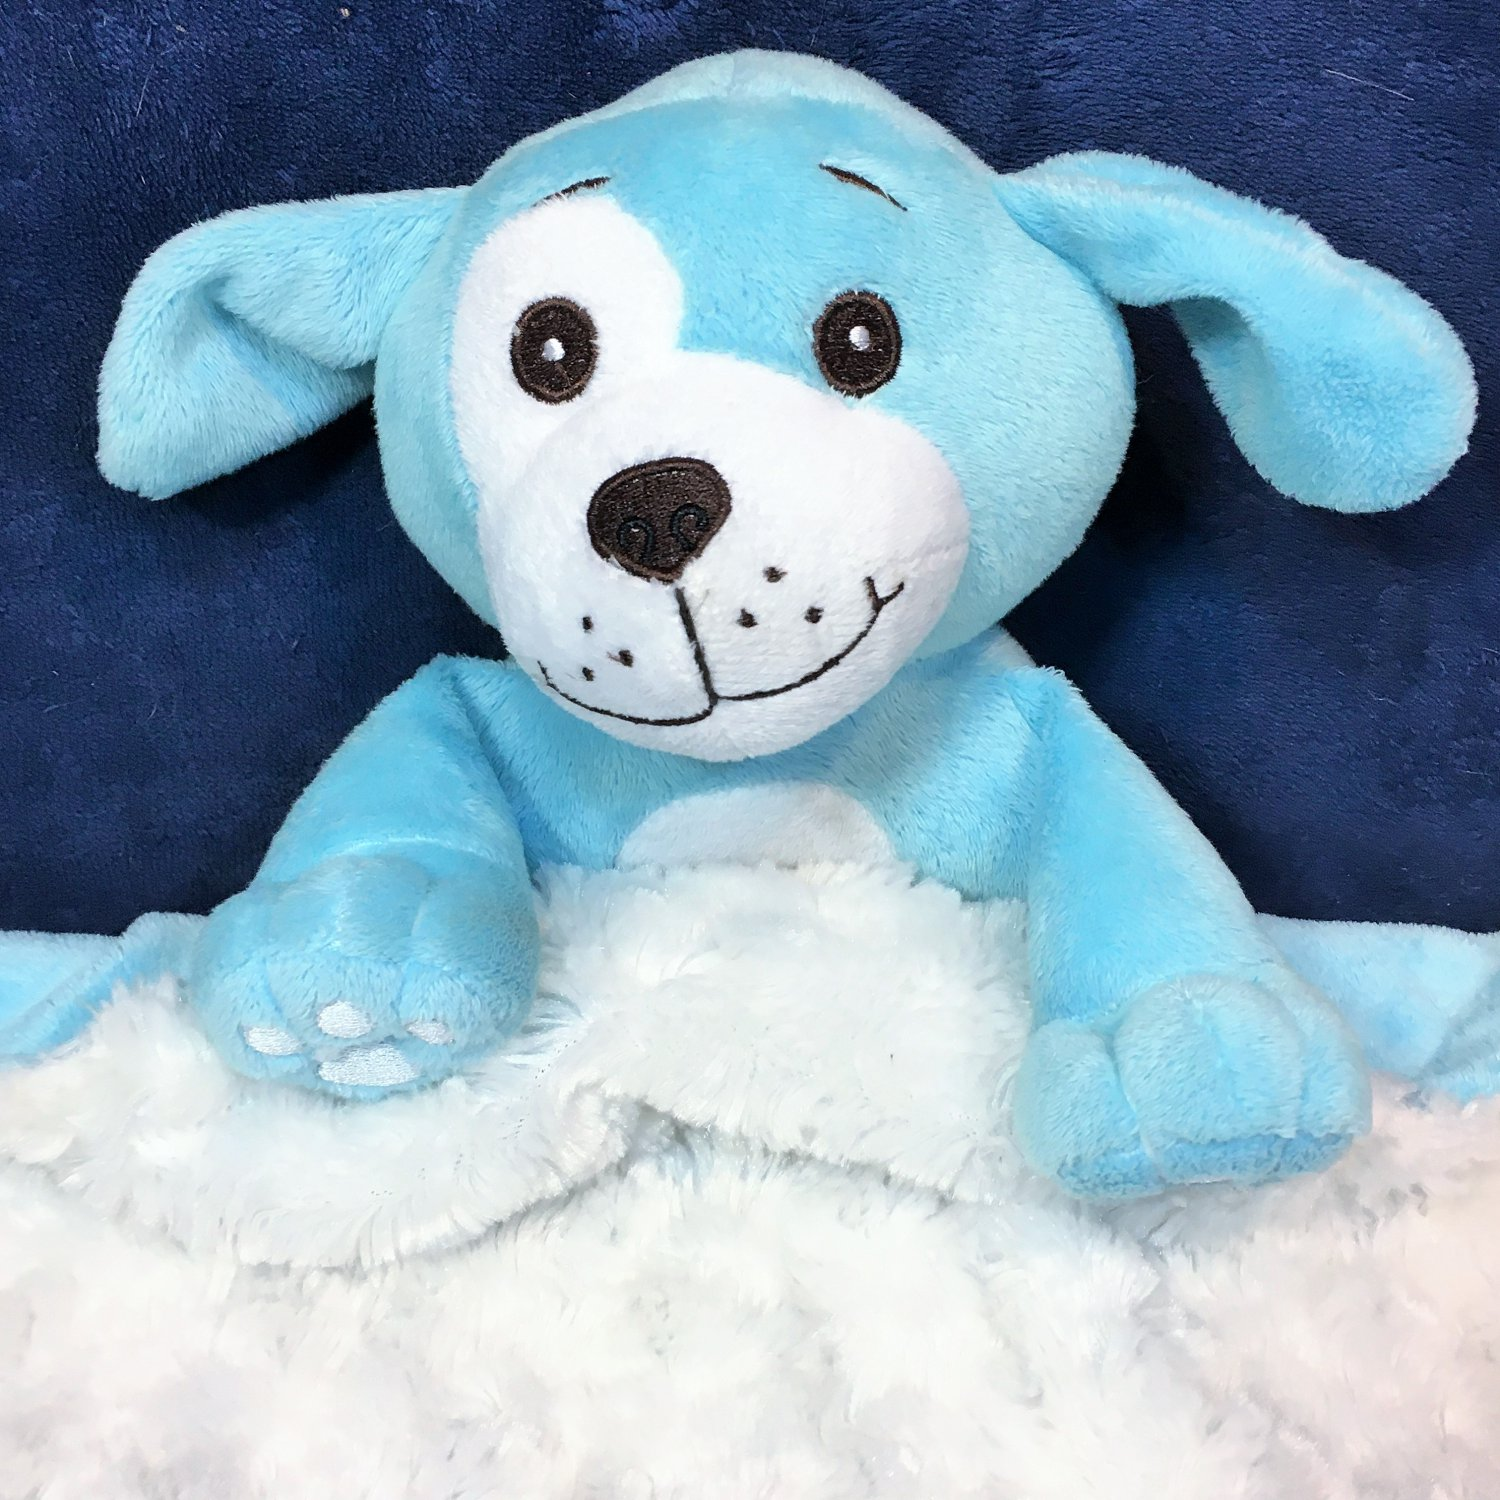 Kinder Keepsakes RARE Blue Plush Puppy Dog Security Baby Luvi Blanket Lovey 17""